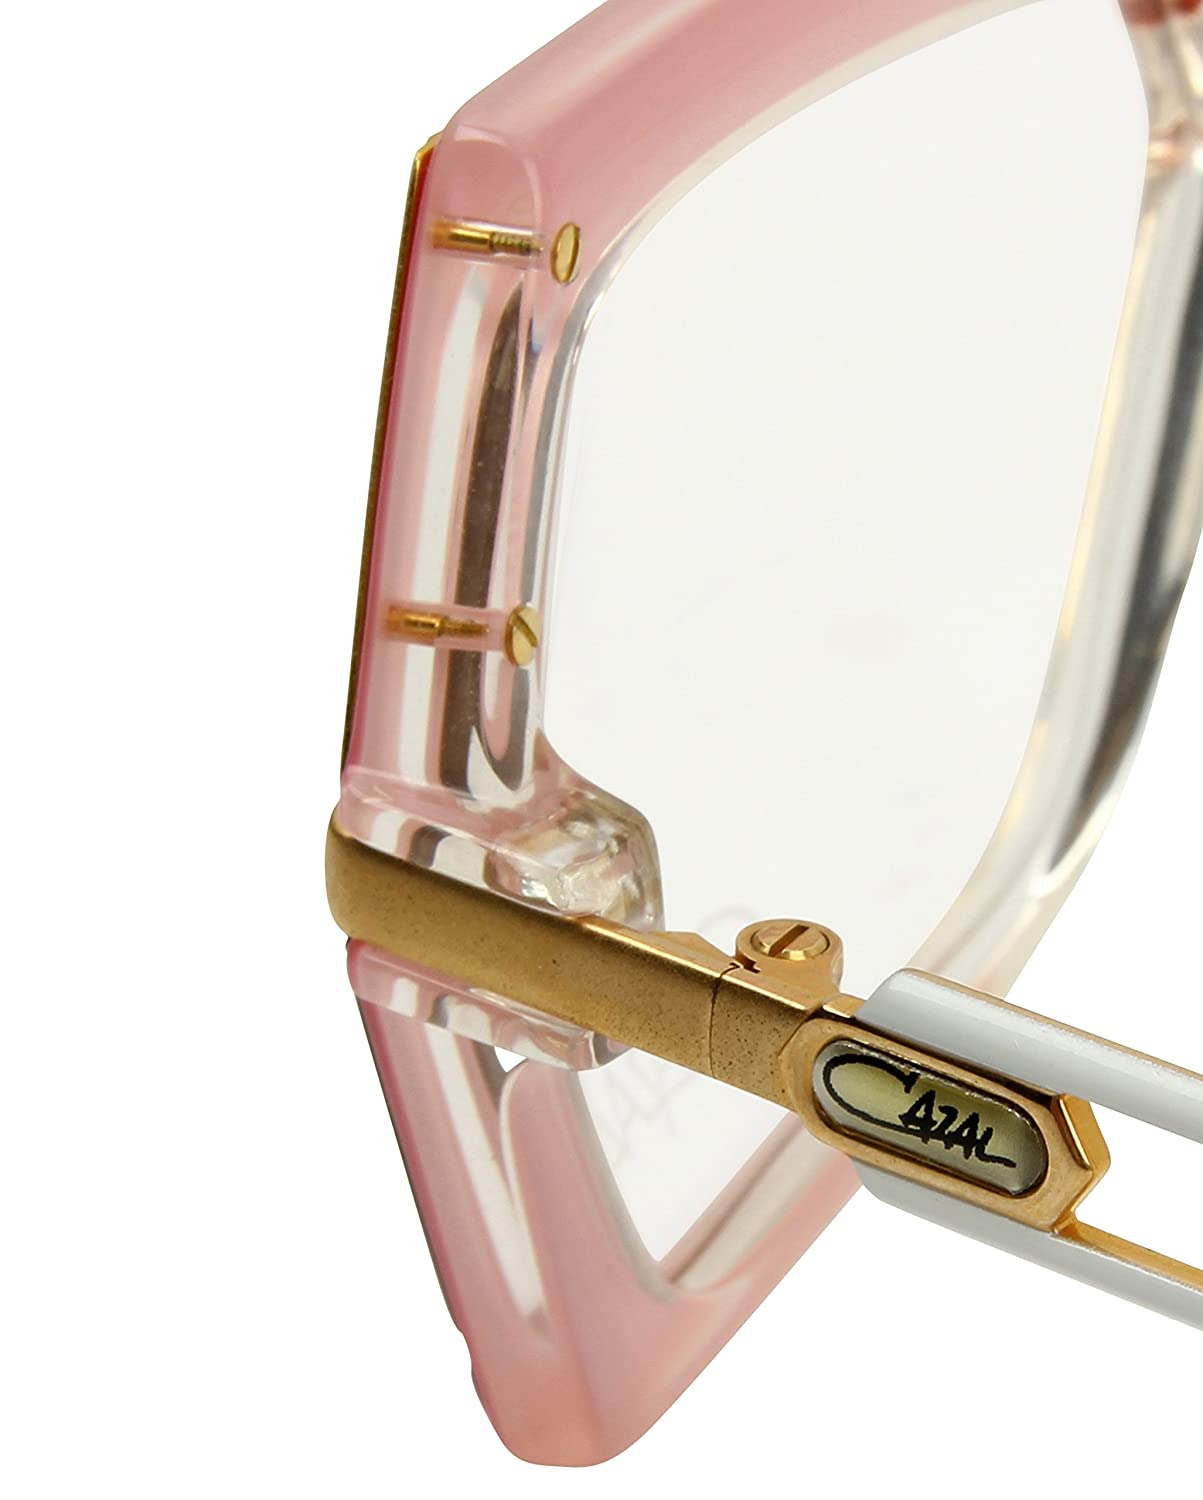 f4e3dbc896be Cazal Vintage Glasses - MOD 183 COL 242 - Pink   Gold - With Case   Amazon.co.uk  Clothing